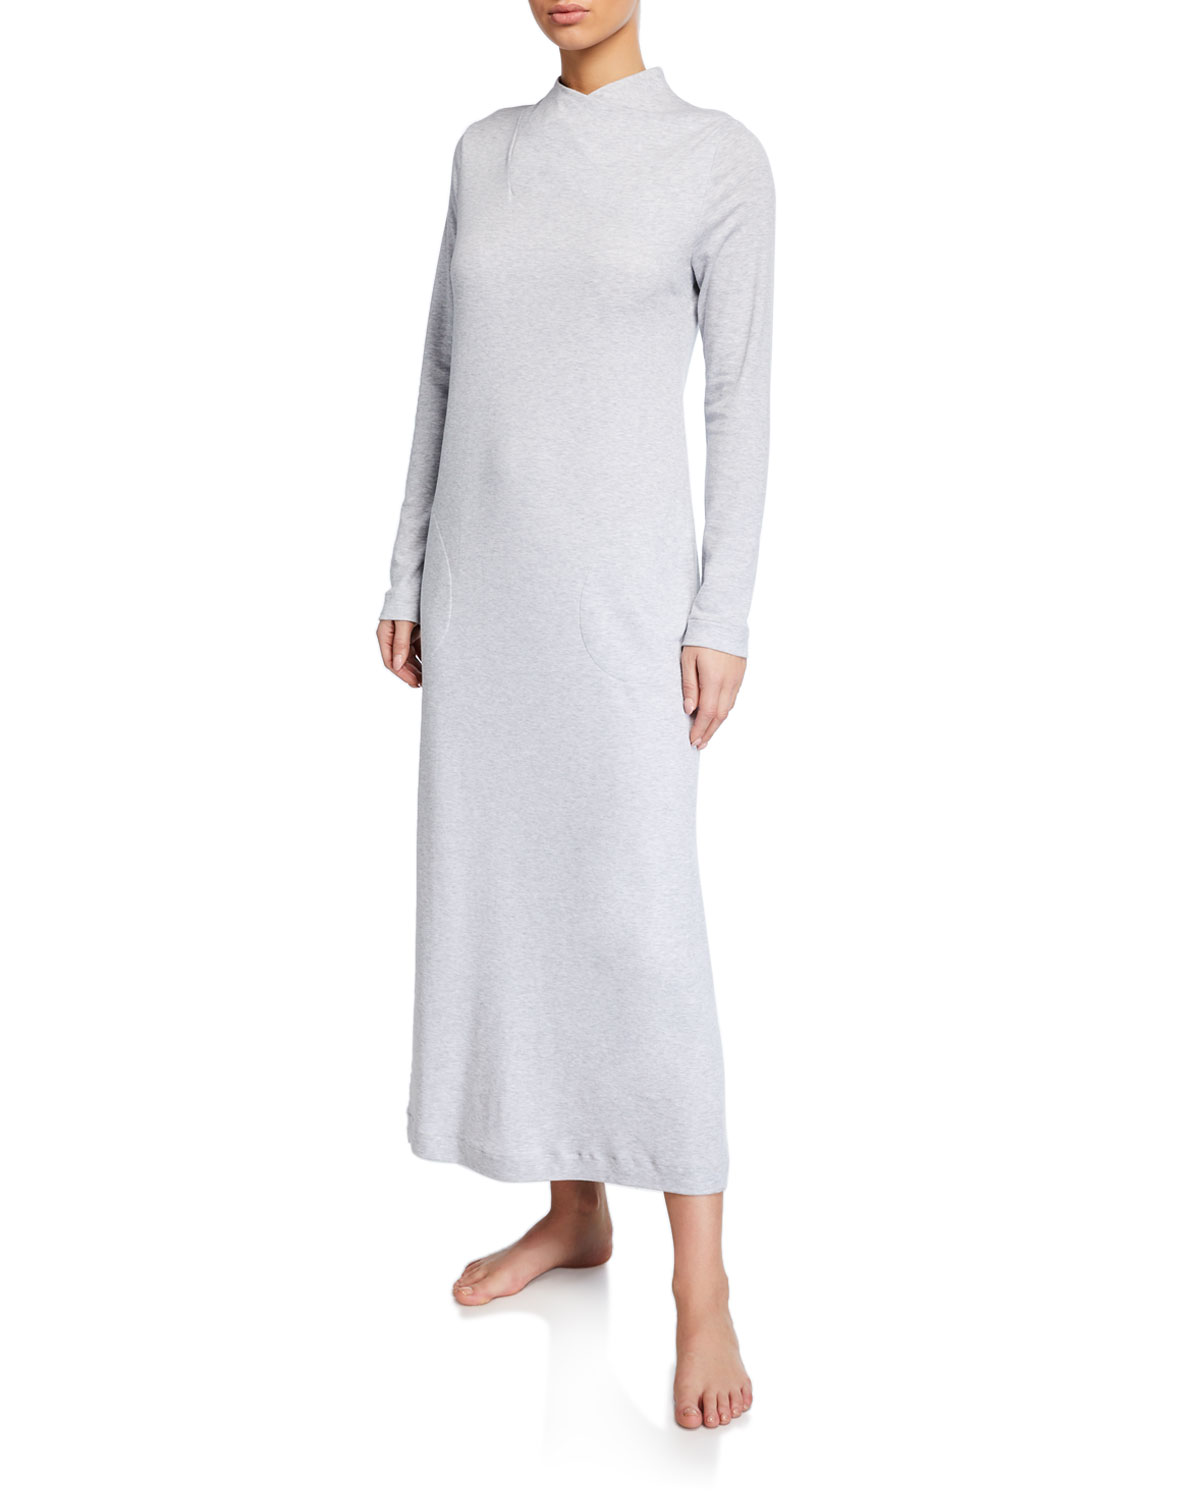 Hanro Tops LUANA HIGH-NECK LONG-SLEEVE LONG NIGHTGOWN